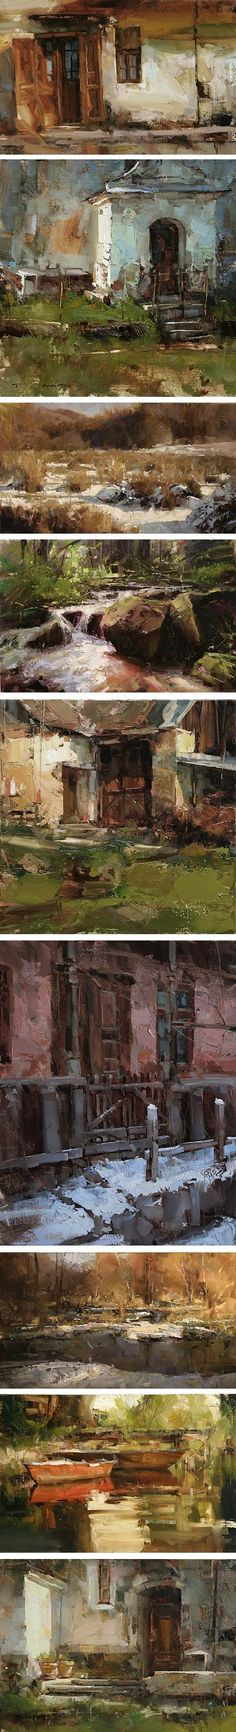 Tibor Nagy is an artist from Slovakia who paints plein air landscapes and townscapes with brusque, rough edged shards and chunks of color. Traditional Paintings, Traditional Art, Landscape Art, Landscape Paintings, Oil Paintings, Art Watercolor, Wow Art, Beautiful Paintings, Painting Techniques